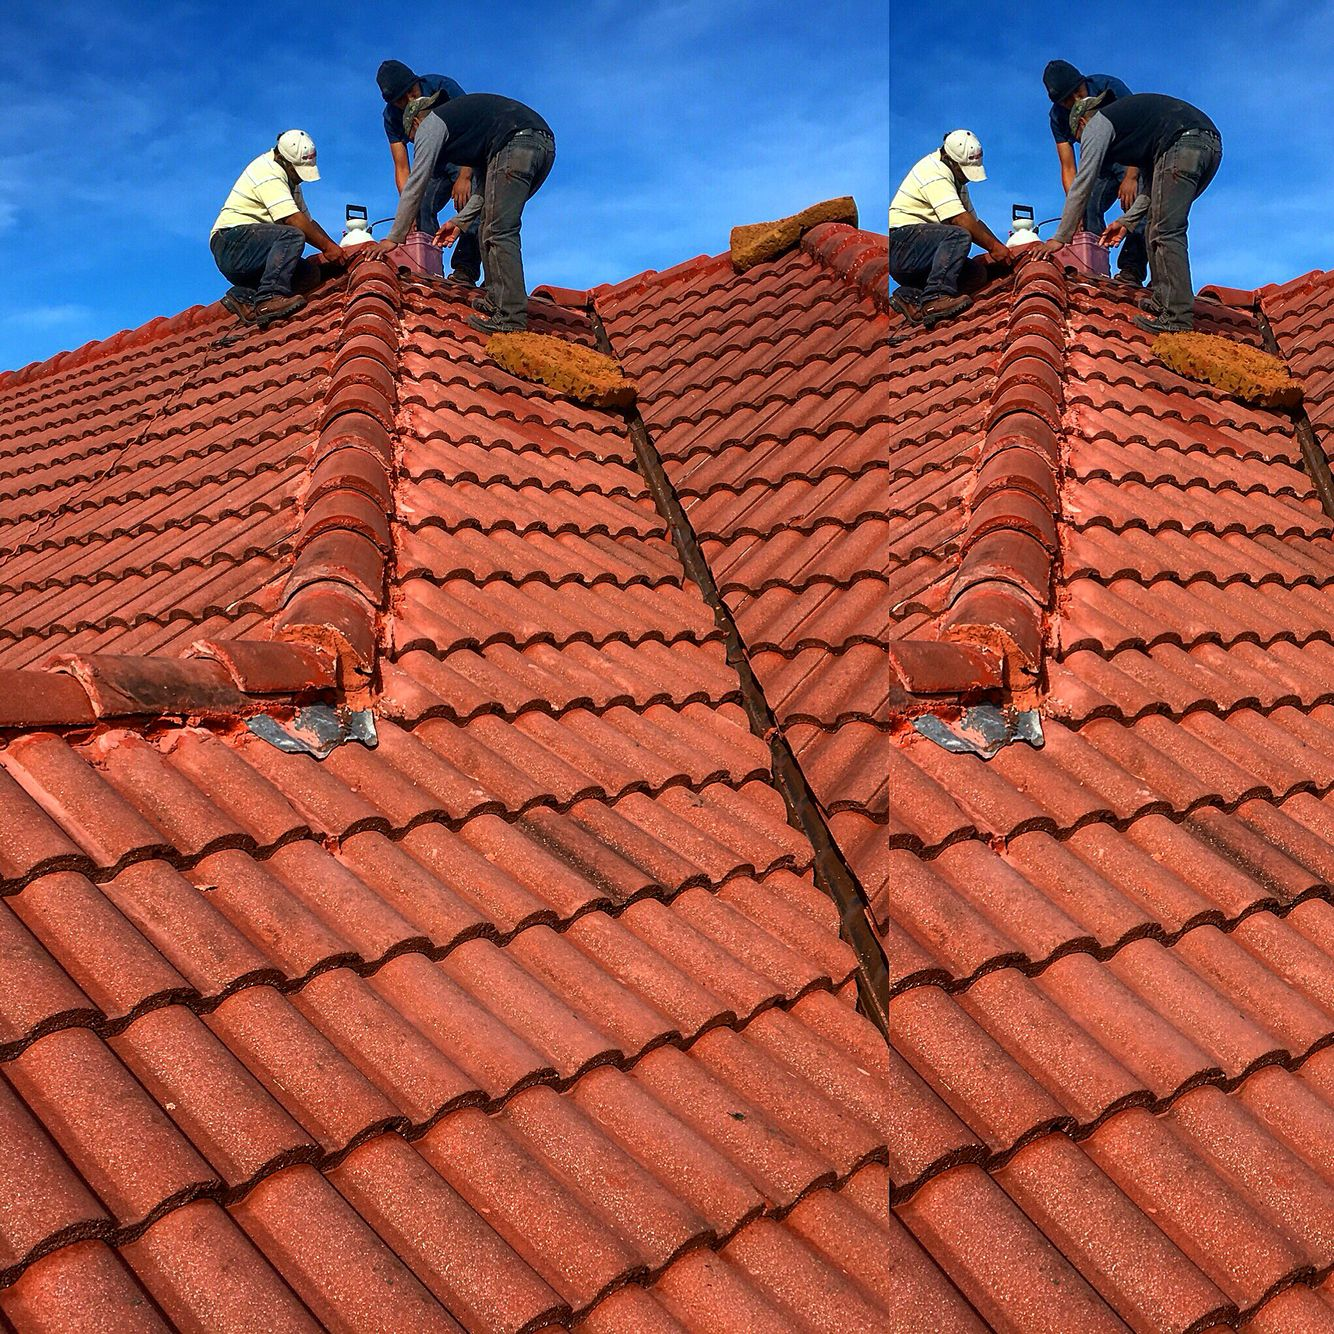 One Of Excel Roofing Companies Crews Working On A Concrete Tile Roof Repair Excelroofingcompany Roof Repair Concrete Tiles Roofing Companies